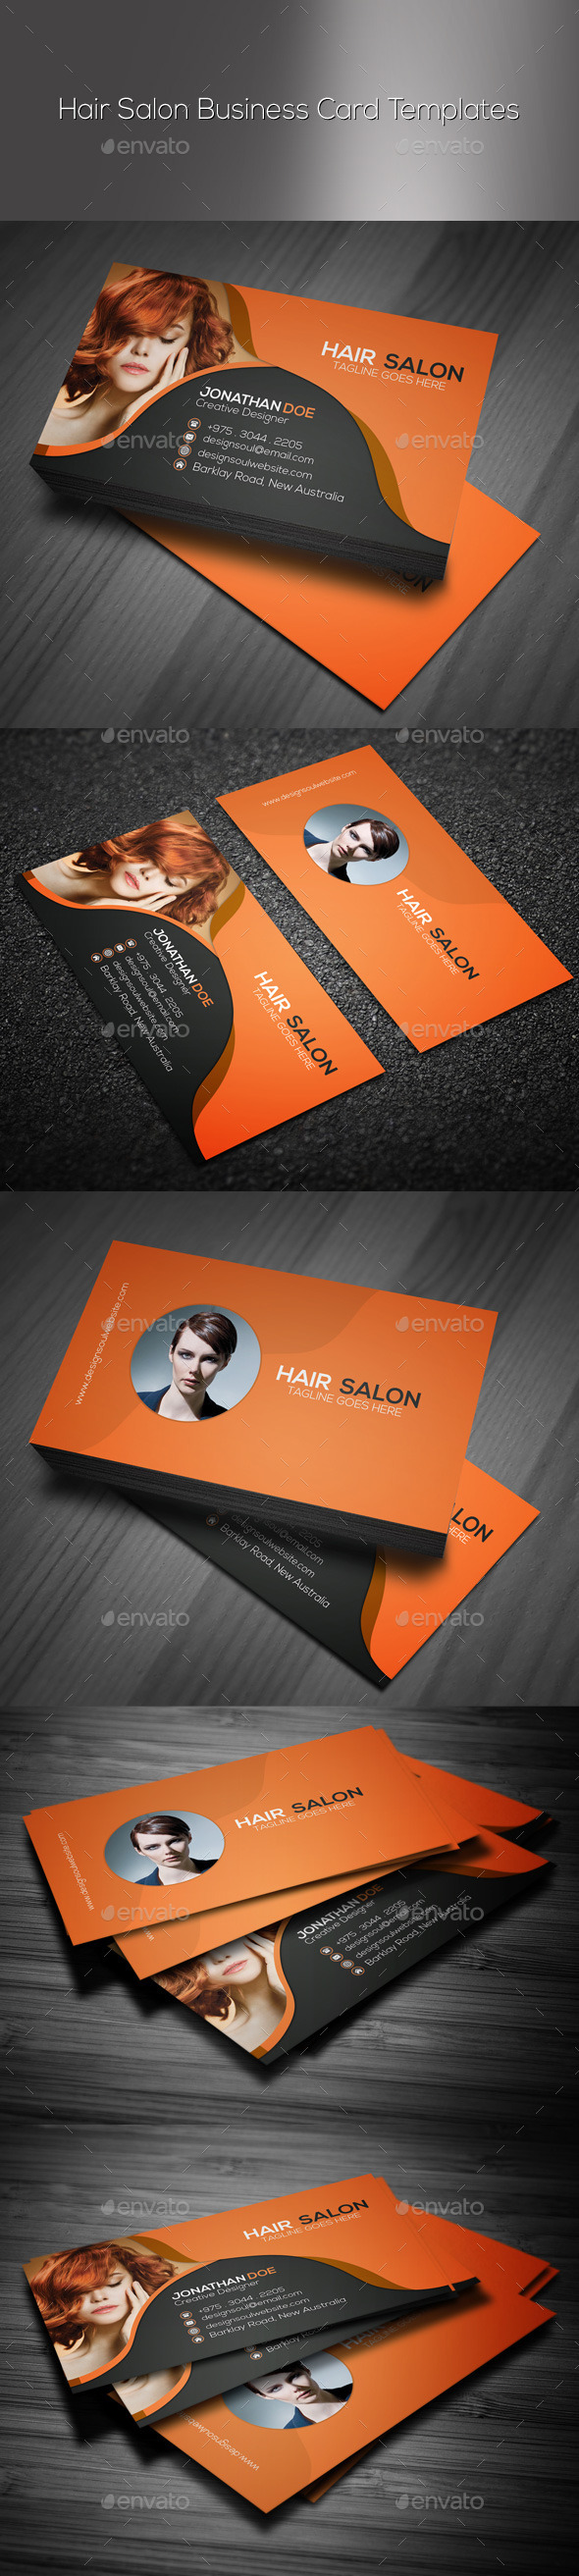 Hair Salon Business Card Graphics Designs Templates - Hair salon business card template